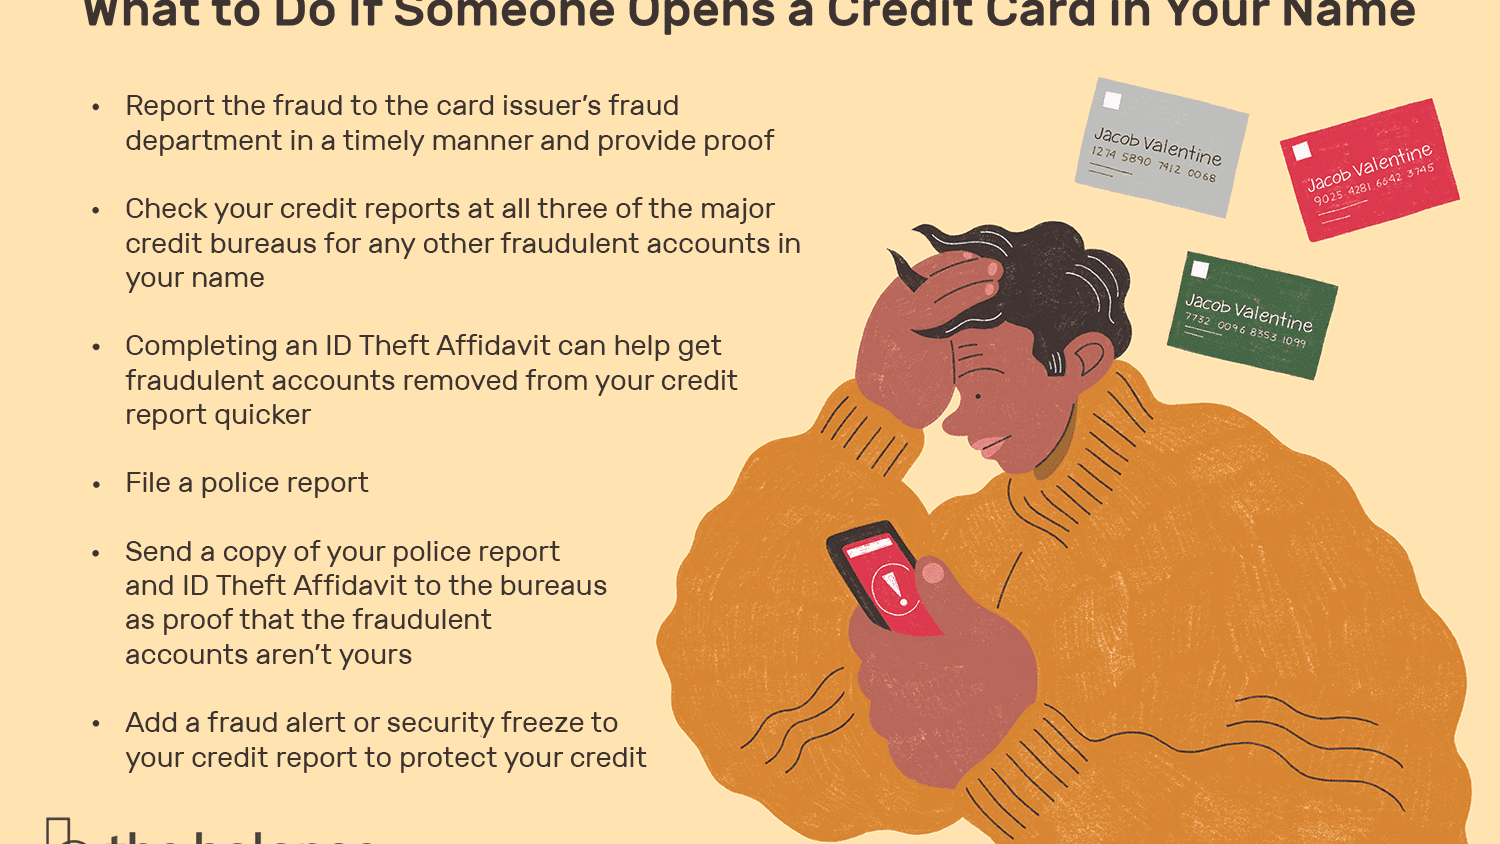 Someone Opened a Credit Card in My Name - What to Do